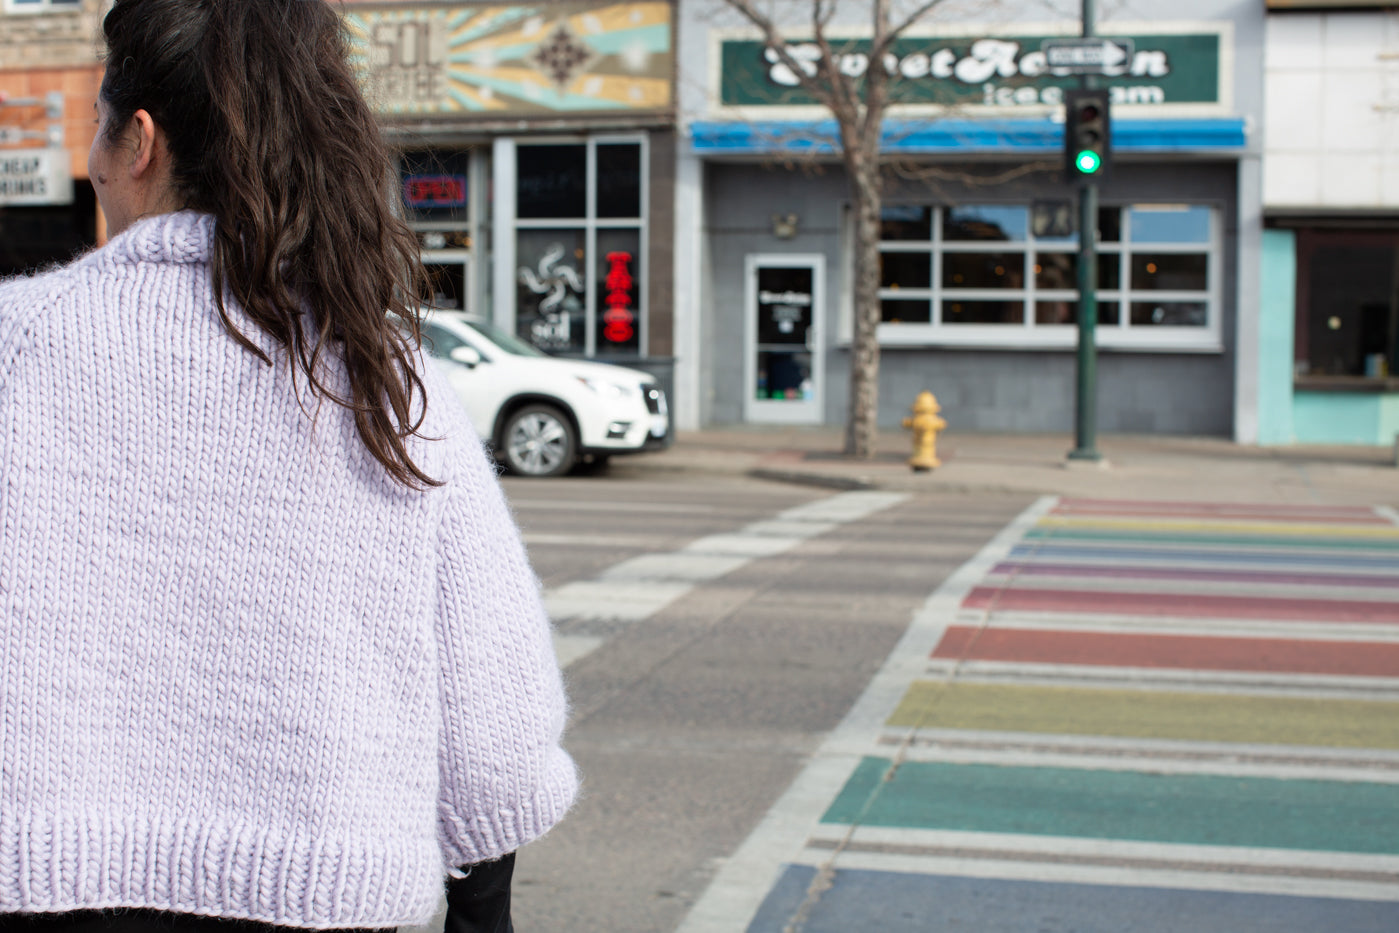 Women wearing a pale lavender cable knit sweater, facing a cross walk.  Photograph is the back of the sweater with the women looking off left with a city street in front of her with a rainbow crosswalk.